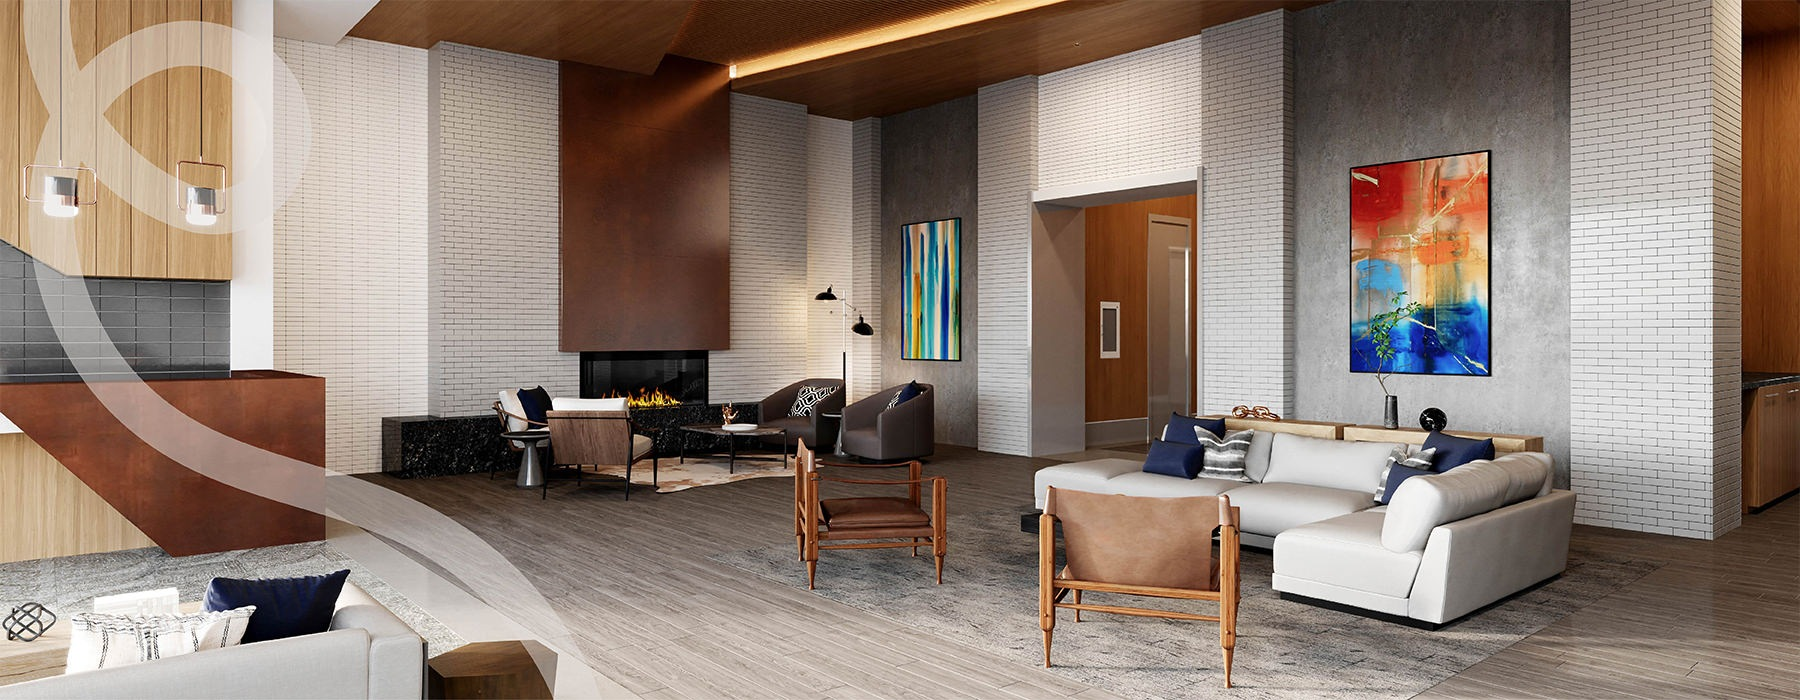 edited graphic of a large lounge area with a fireplace and ample seating